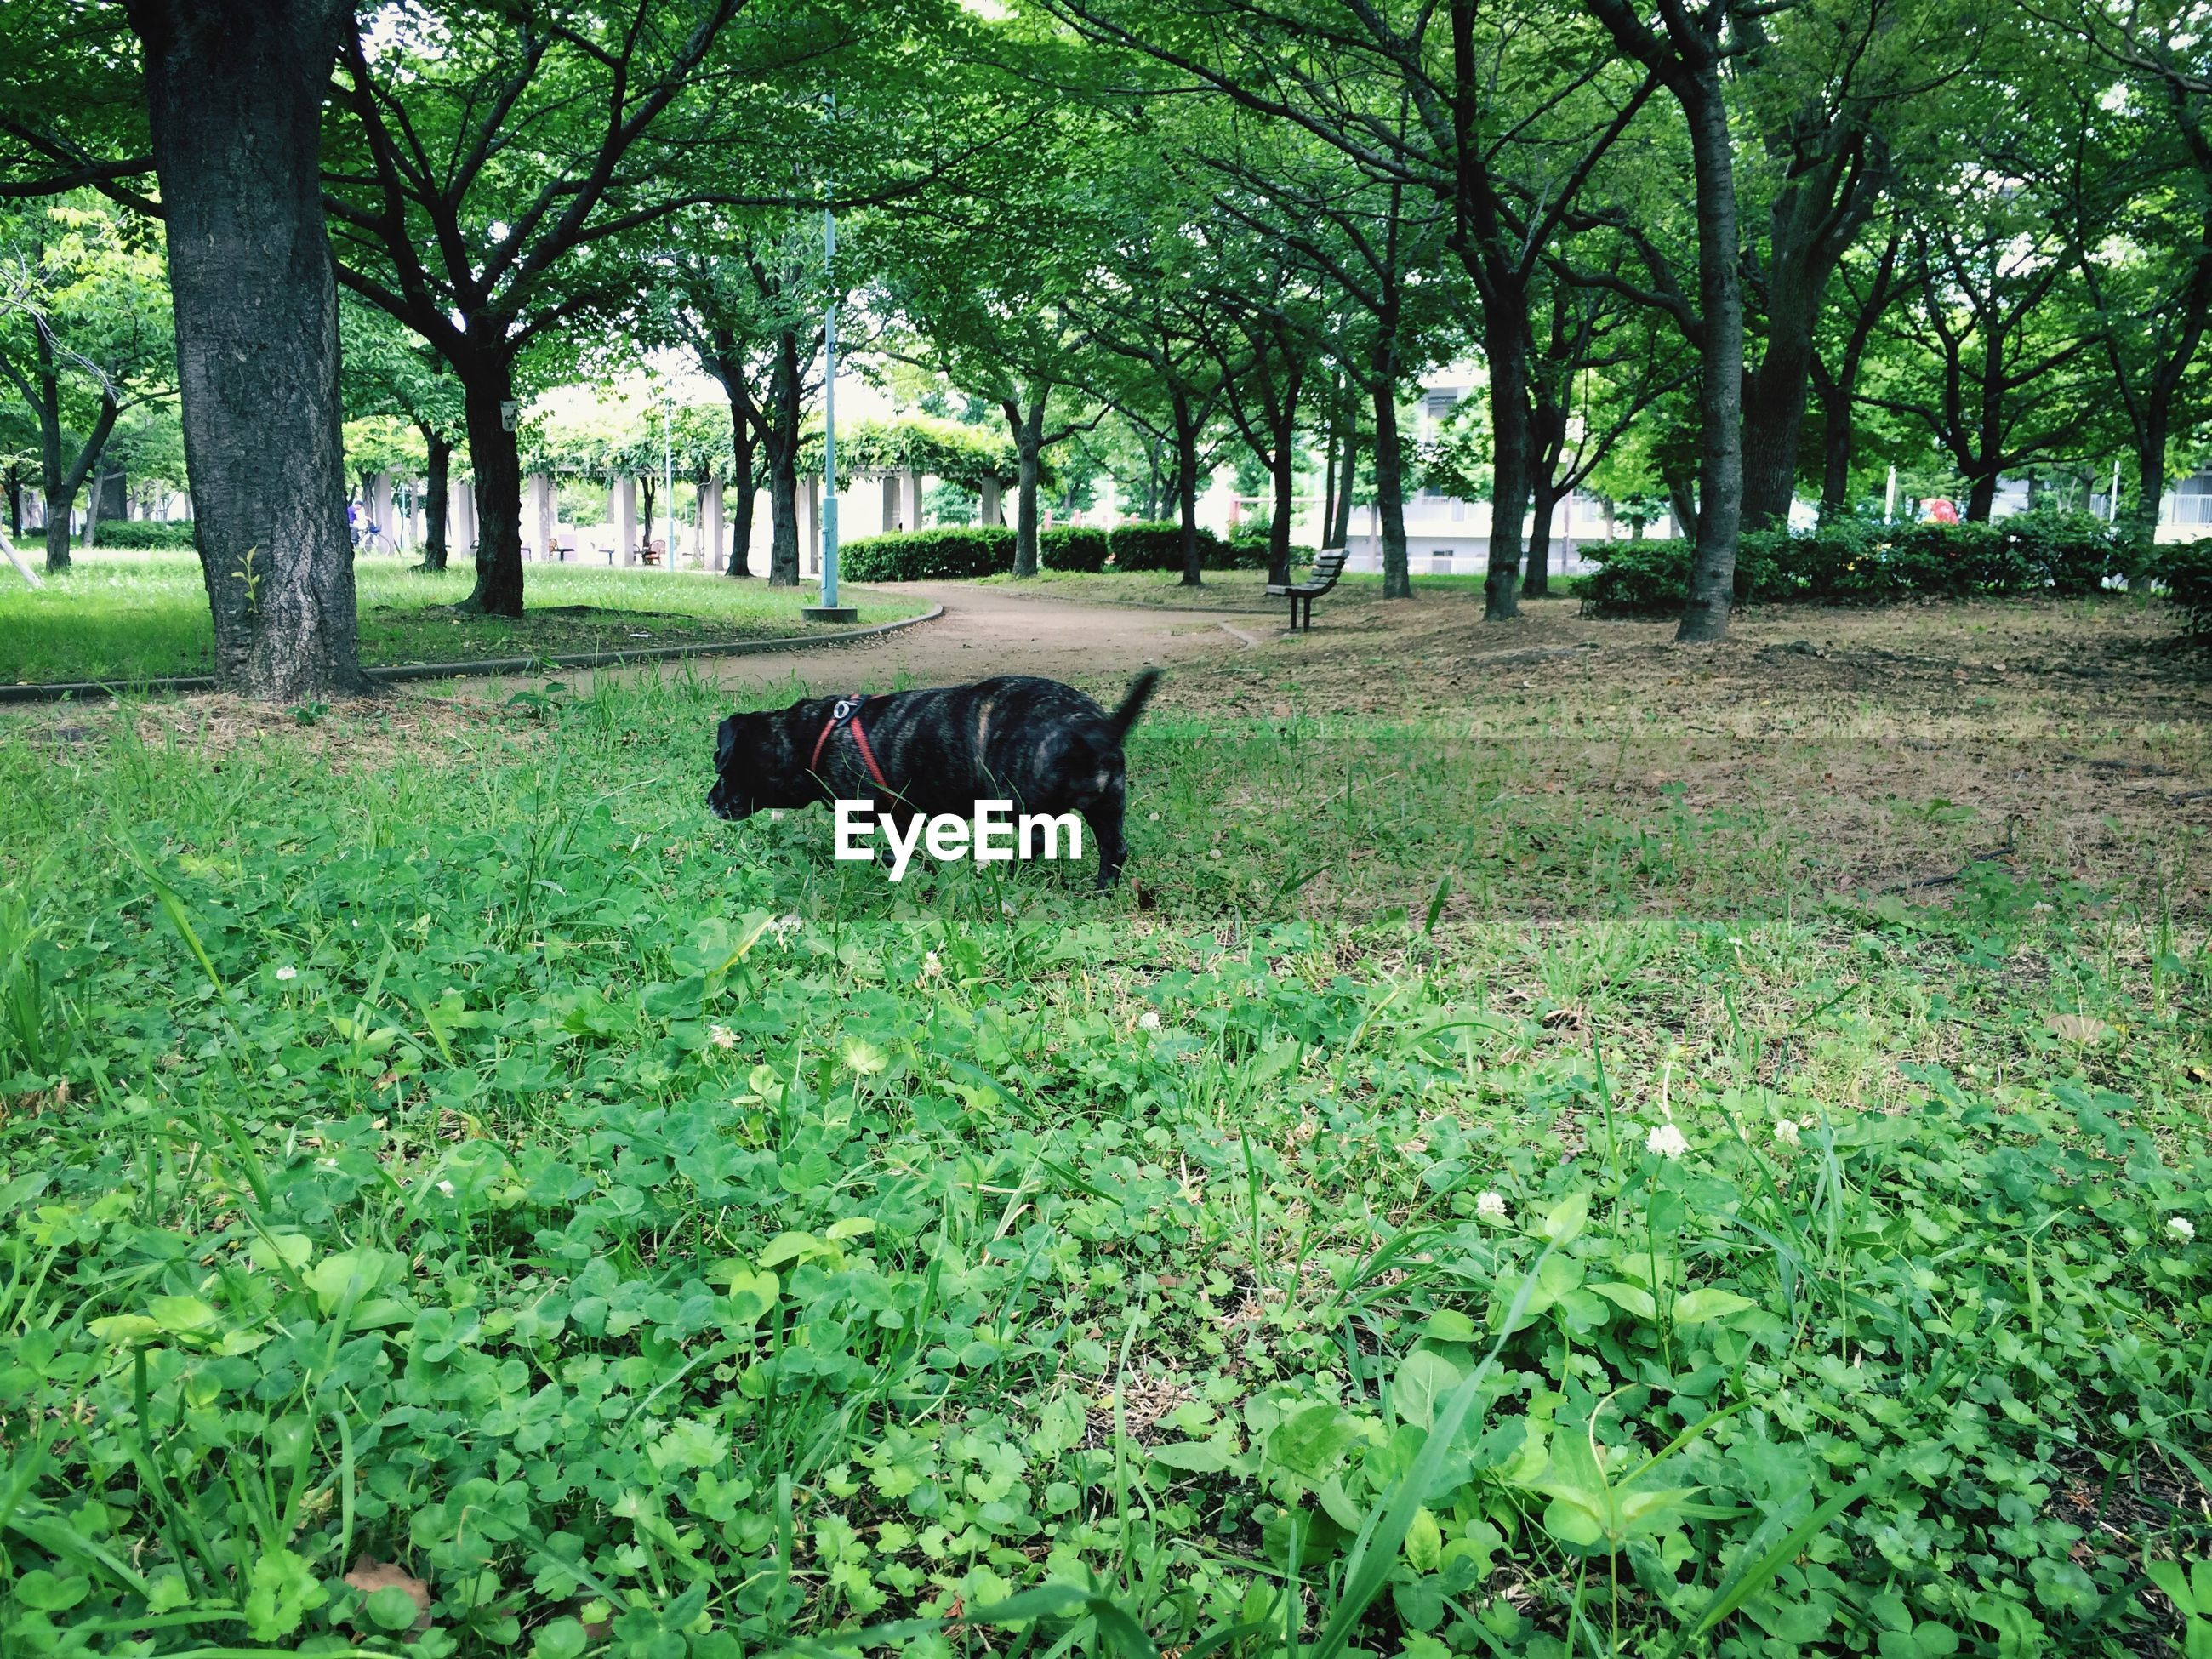 tree, animal themes, one animal, mammal, grass, domestic animals, growth, pets, green color, nature, tree trunk, tranquility, field, dog, grassy, park - man made space, forest, day, plant, no people